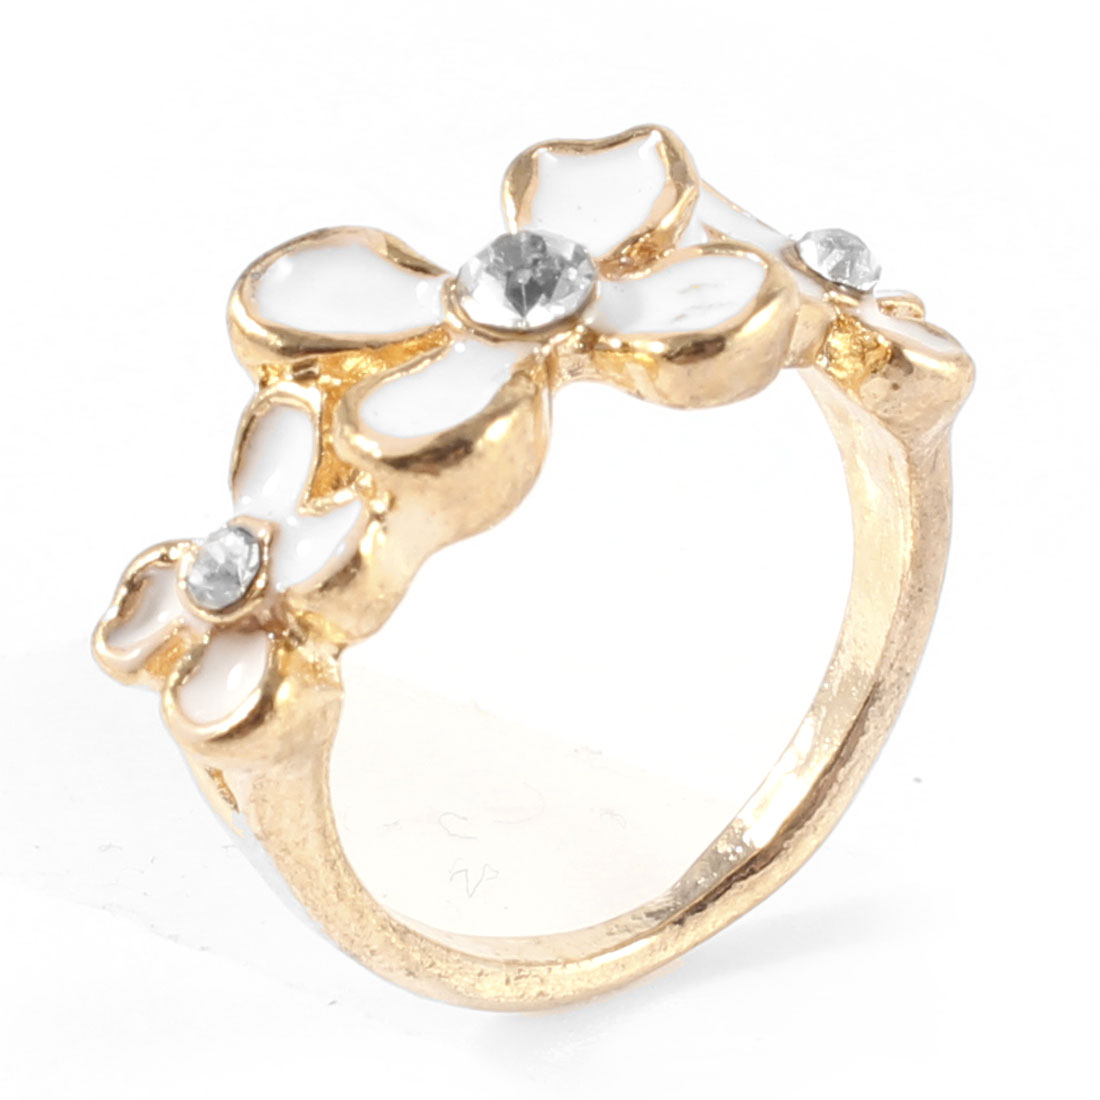 Ladies Rhinestone Inlaid White Flower Decor Gold Tone Metal Finger Ring Gift